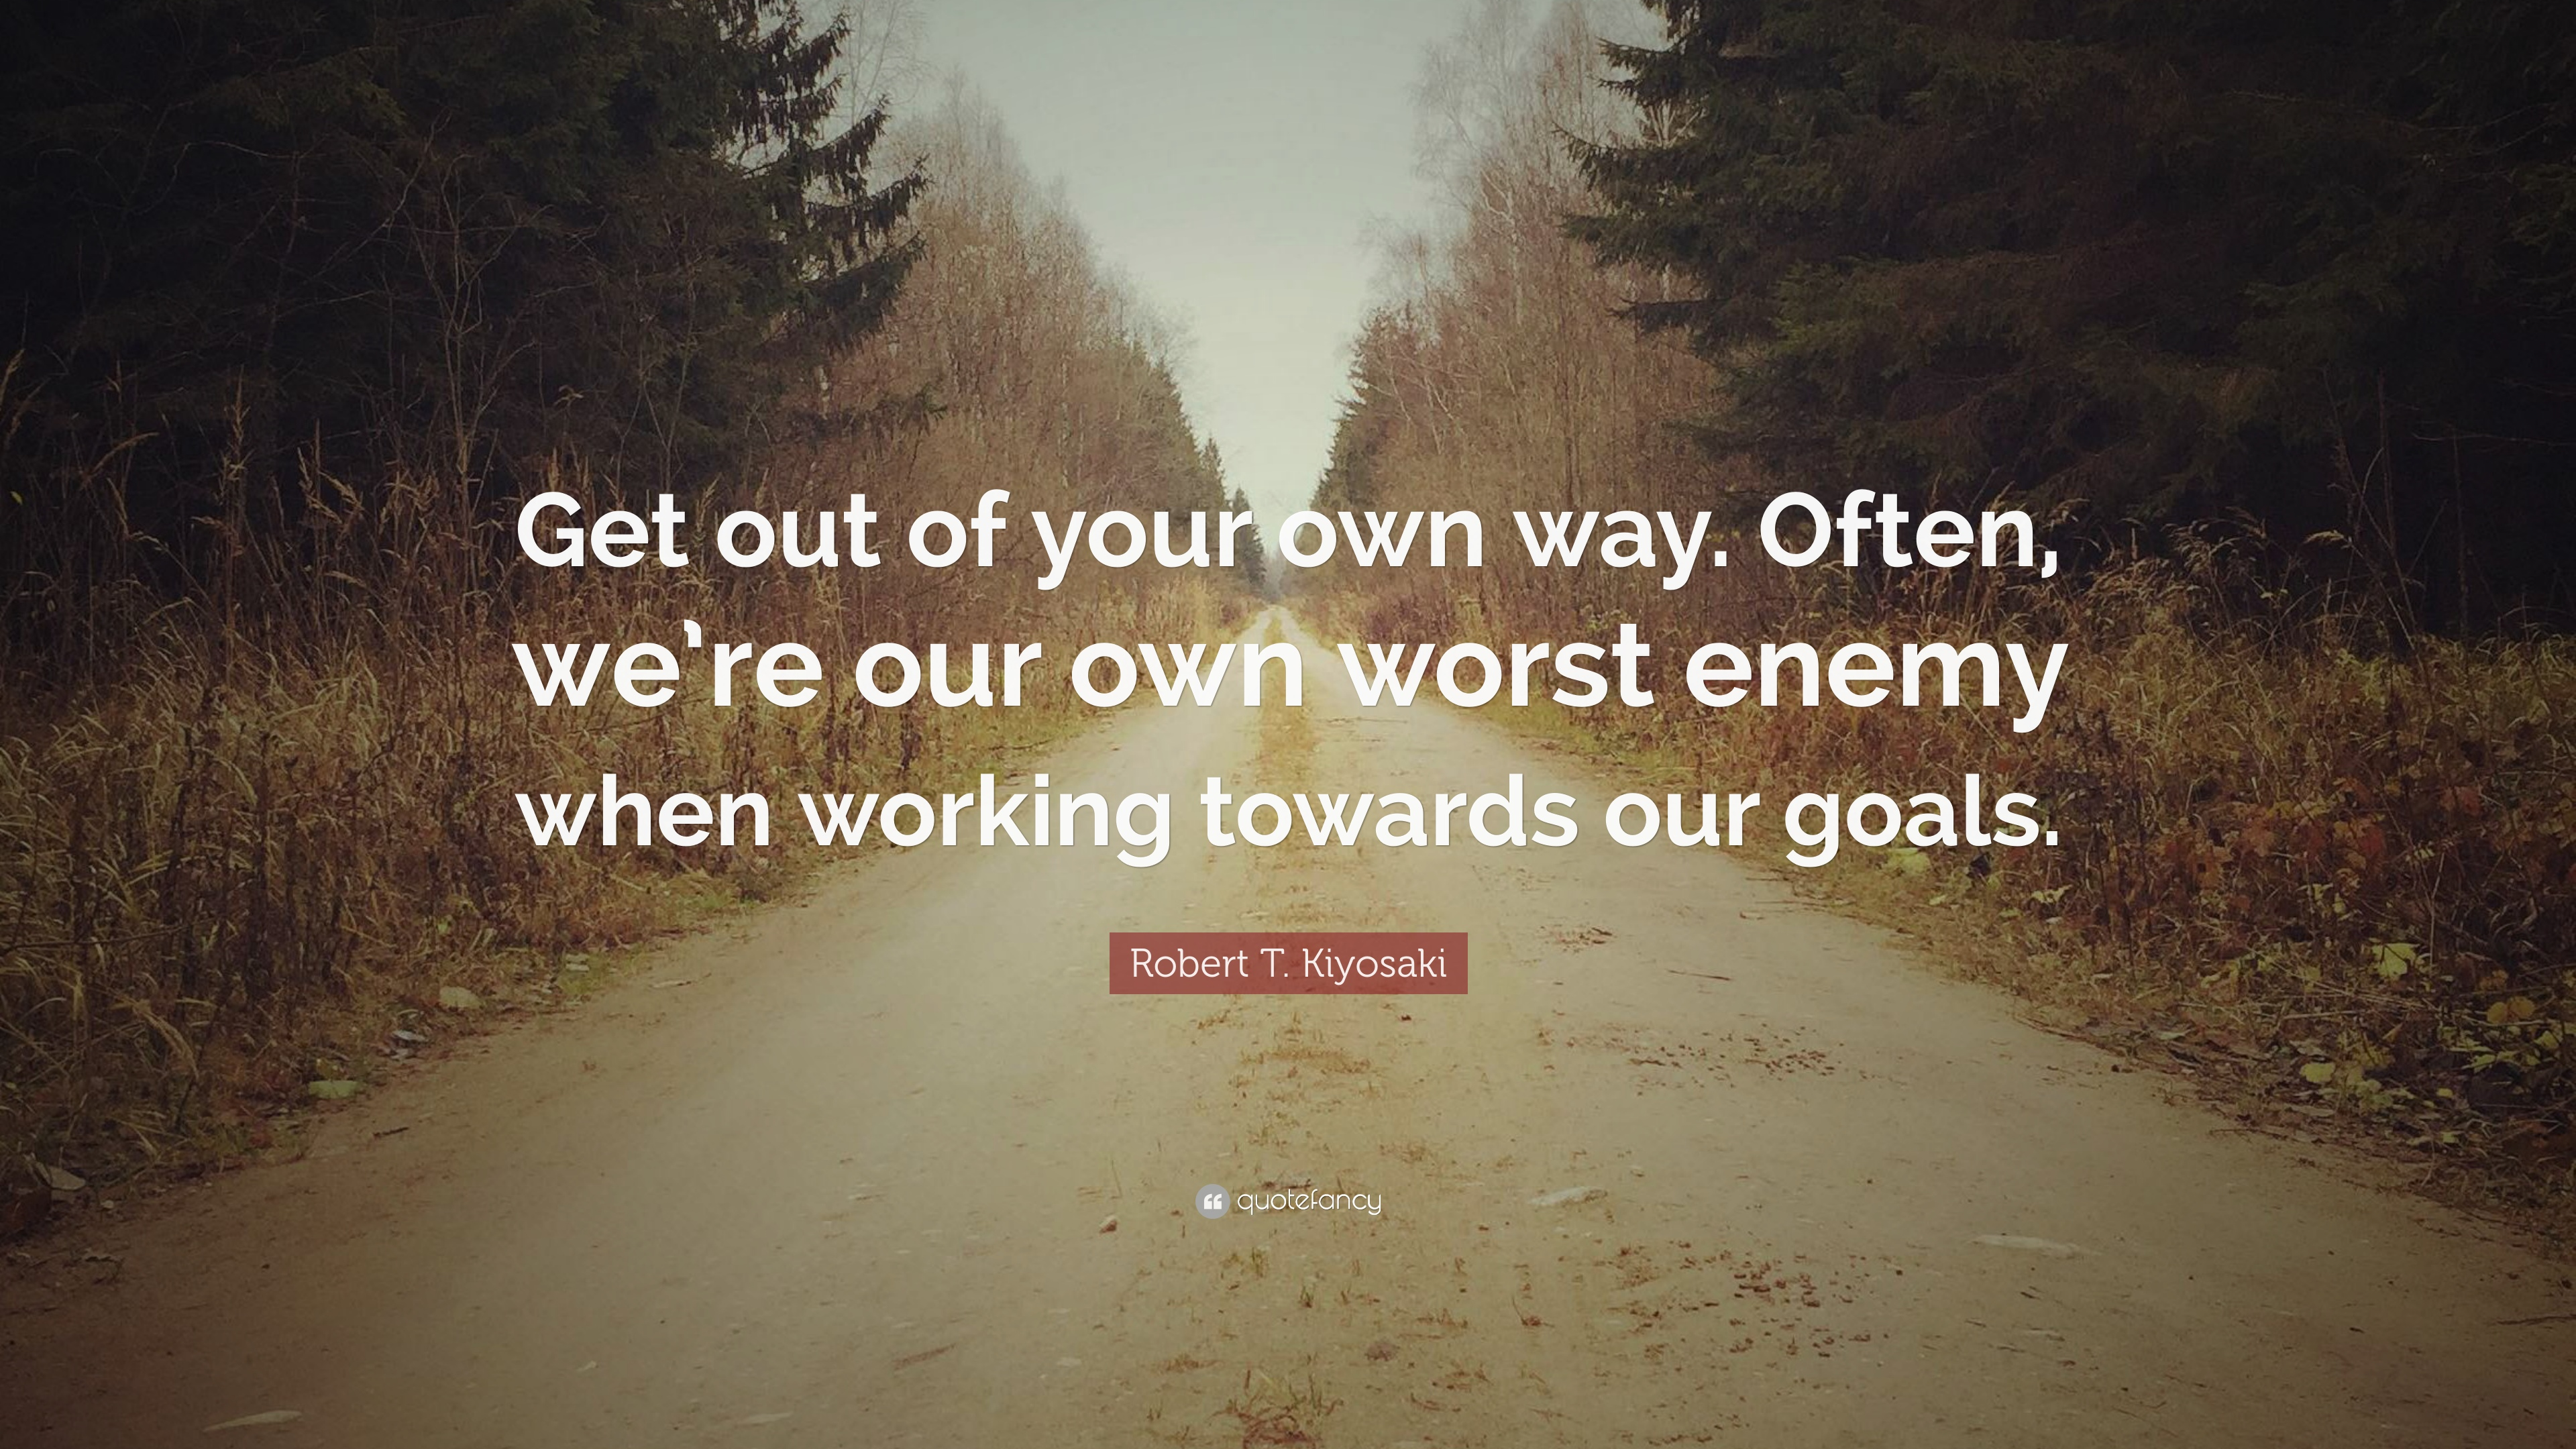 Robert T Kiyosaki Quote Get Out Of Your Own Way Often Were Our